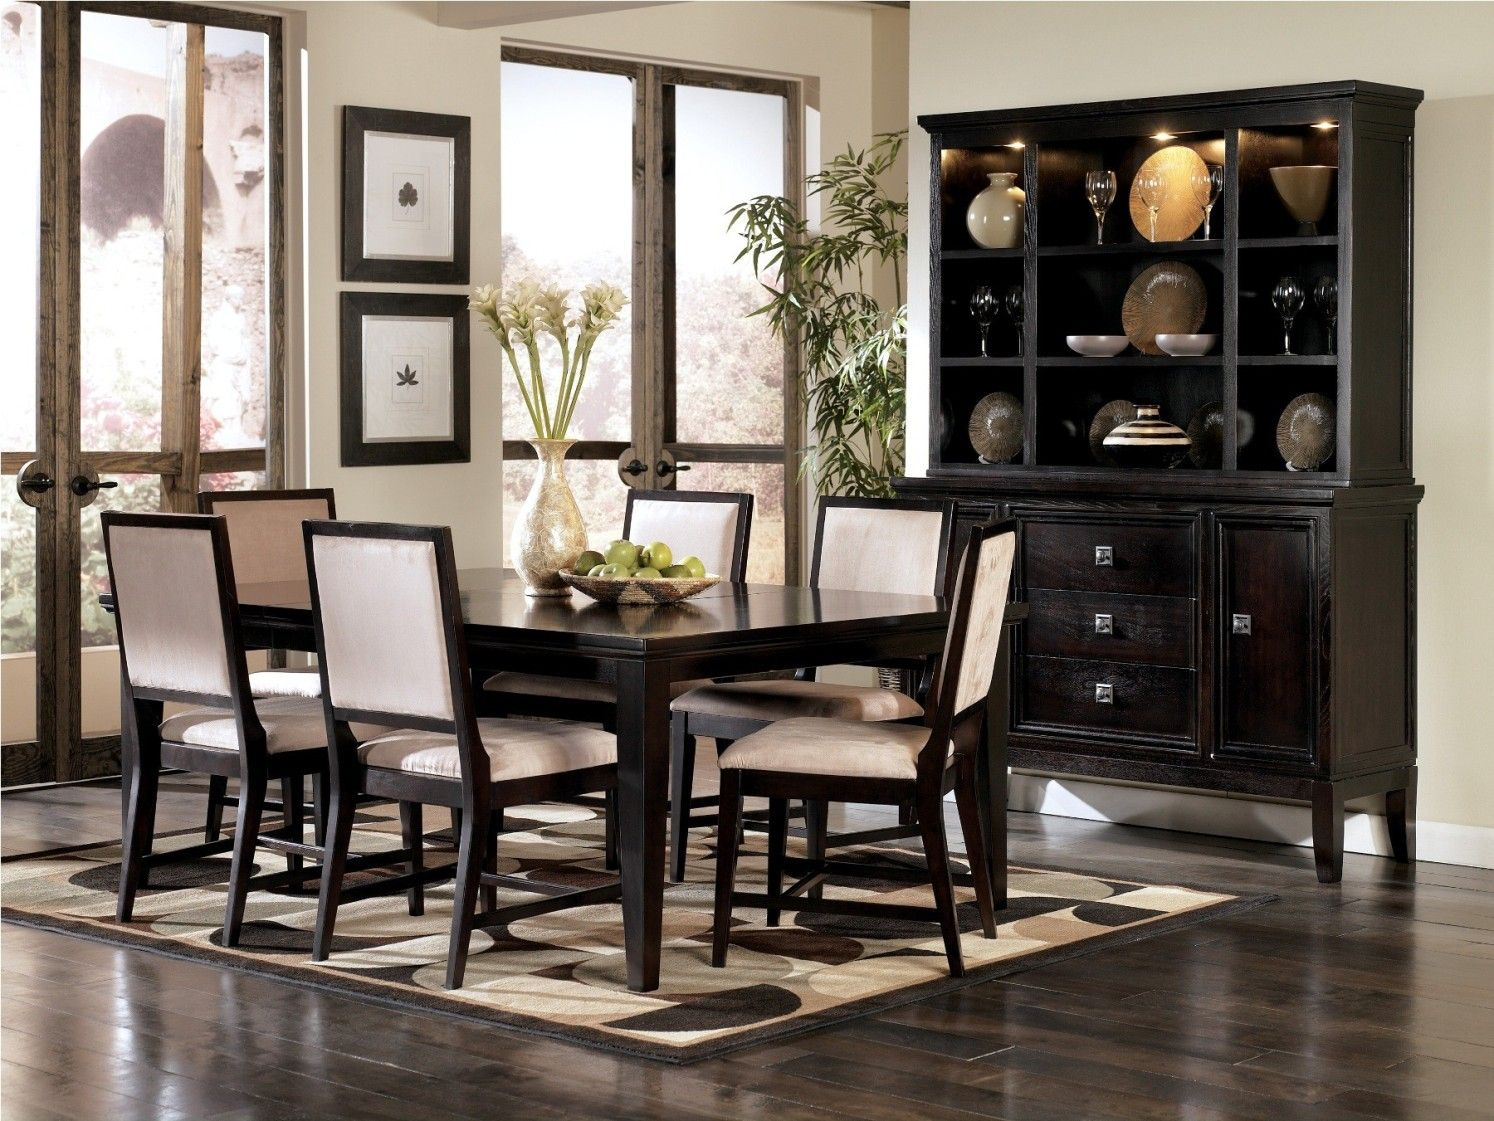 Get Your Own Affordable Yet Stylish Dining Room Set On Sale Cool Sale Dining Room Chairs 2018